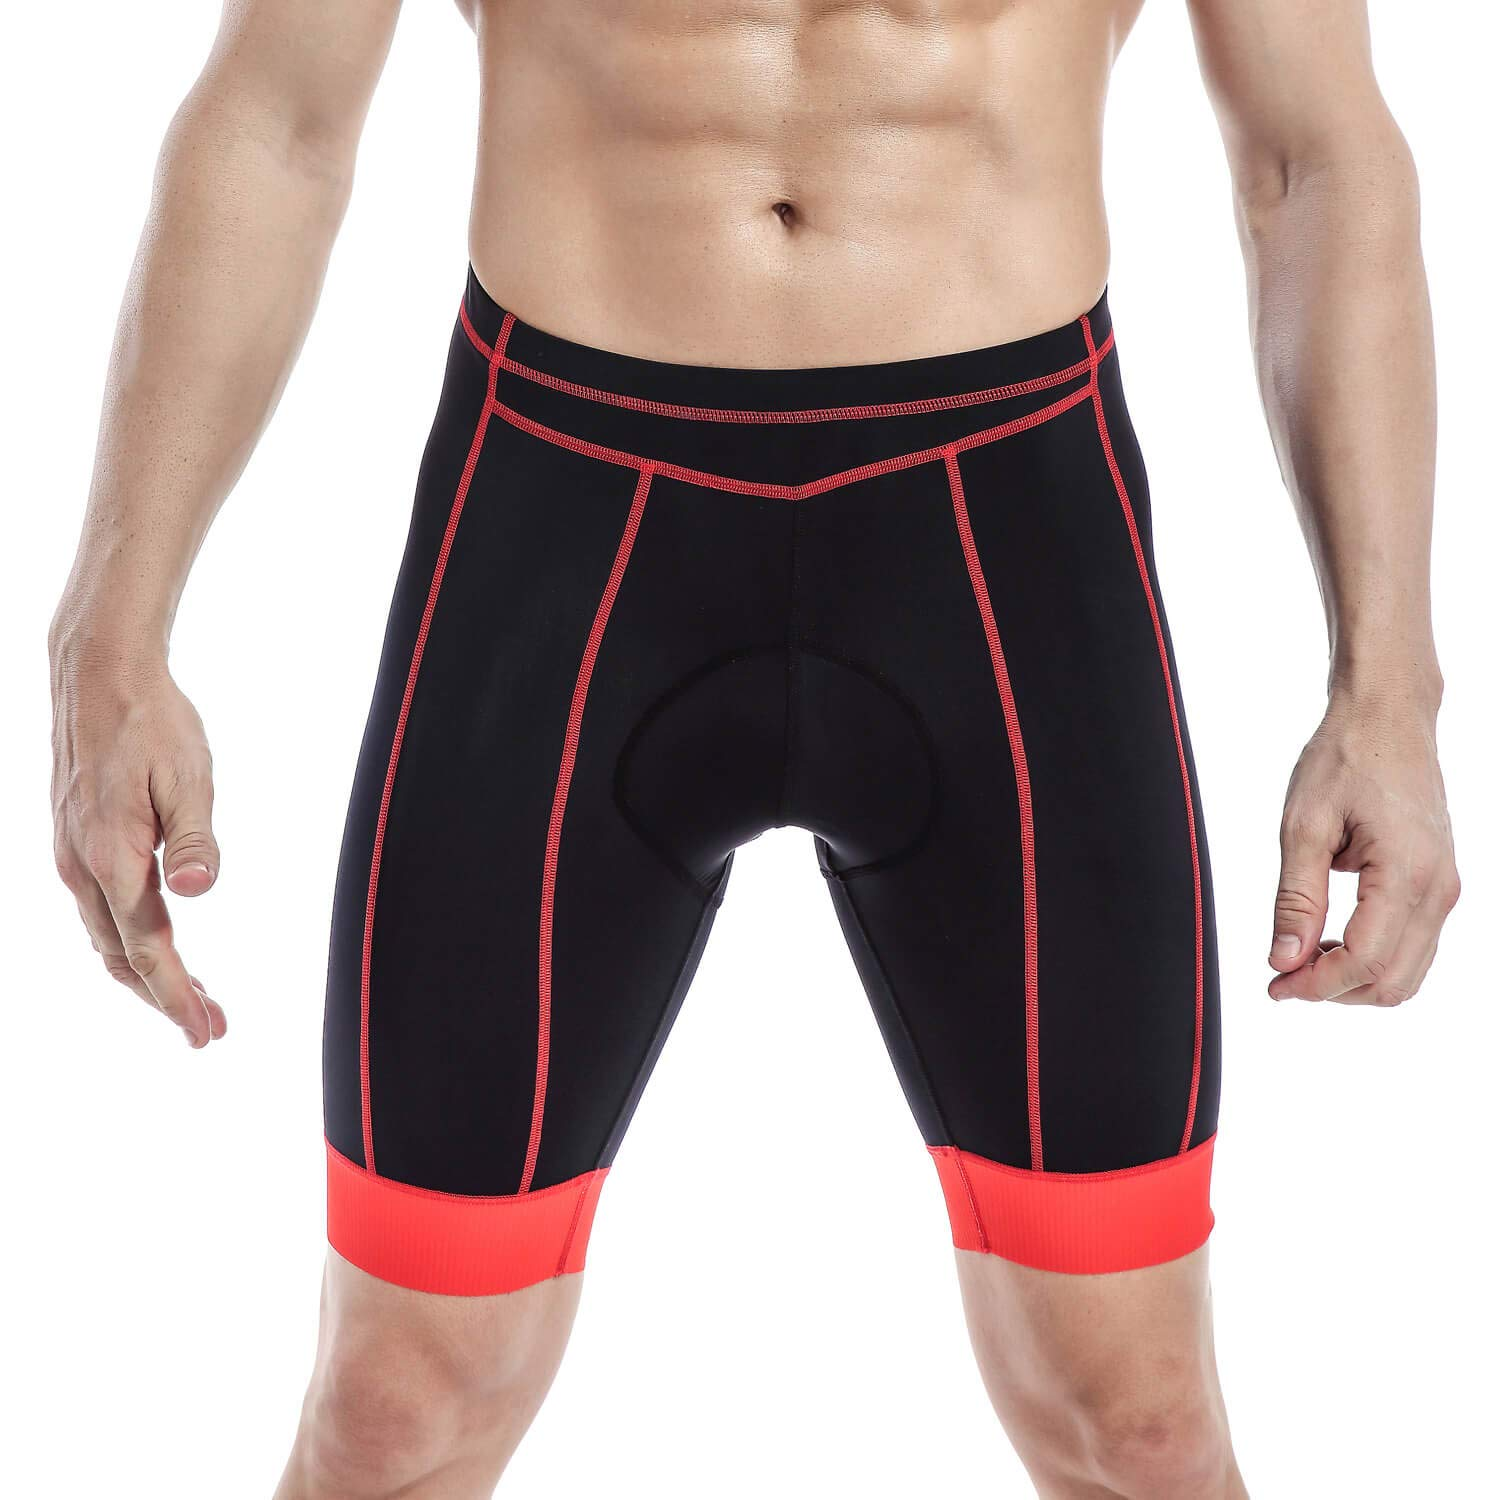 Men's Bike Shorts Padded Bicycle Riding Pants Cycling Clothes Cycle Wear Tights